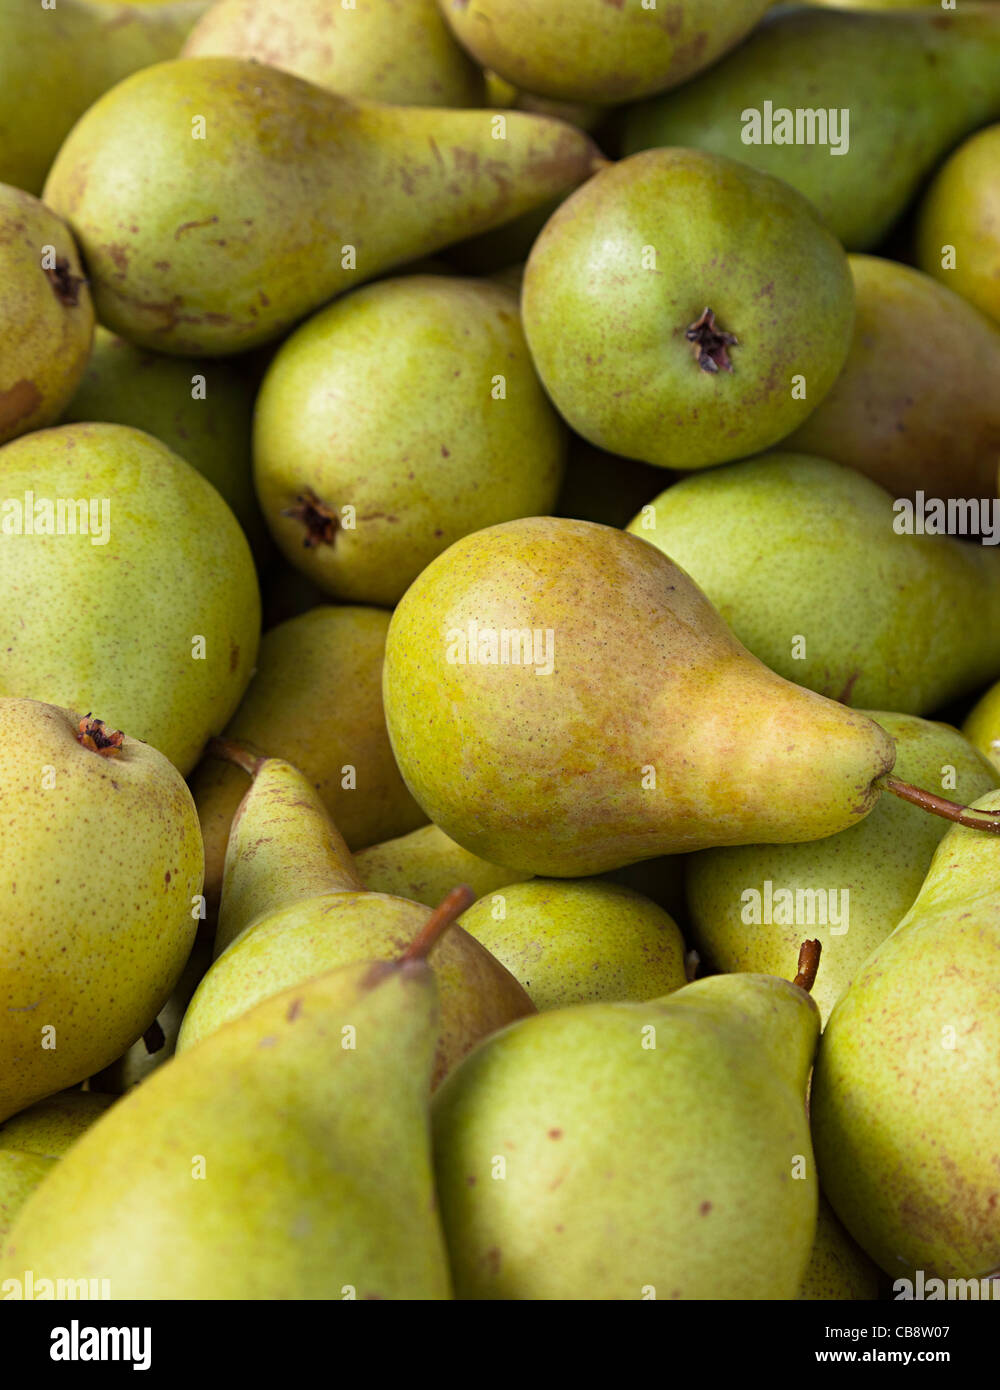 Concorde pears - Stock Image